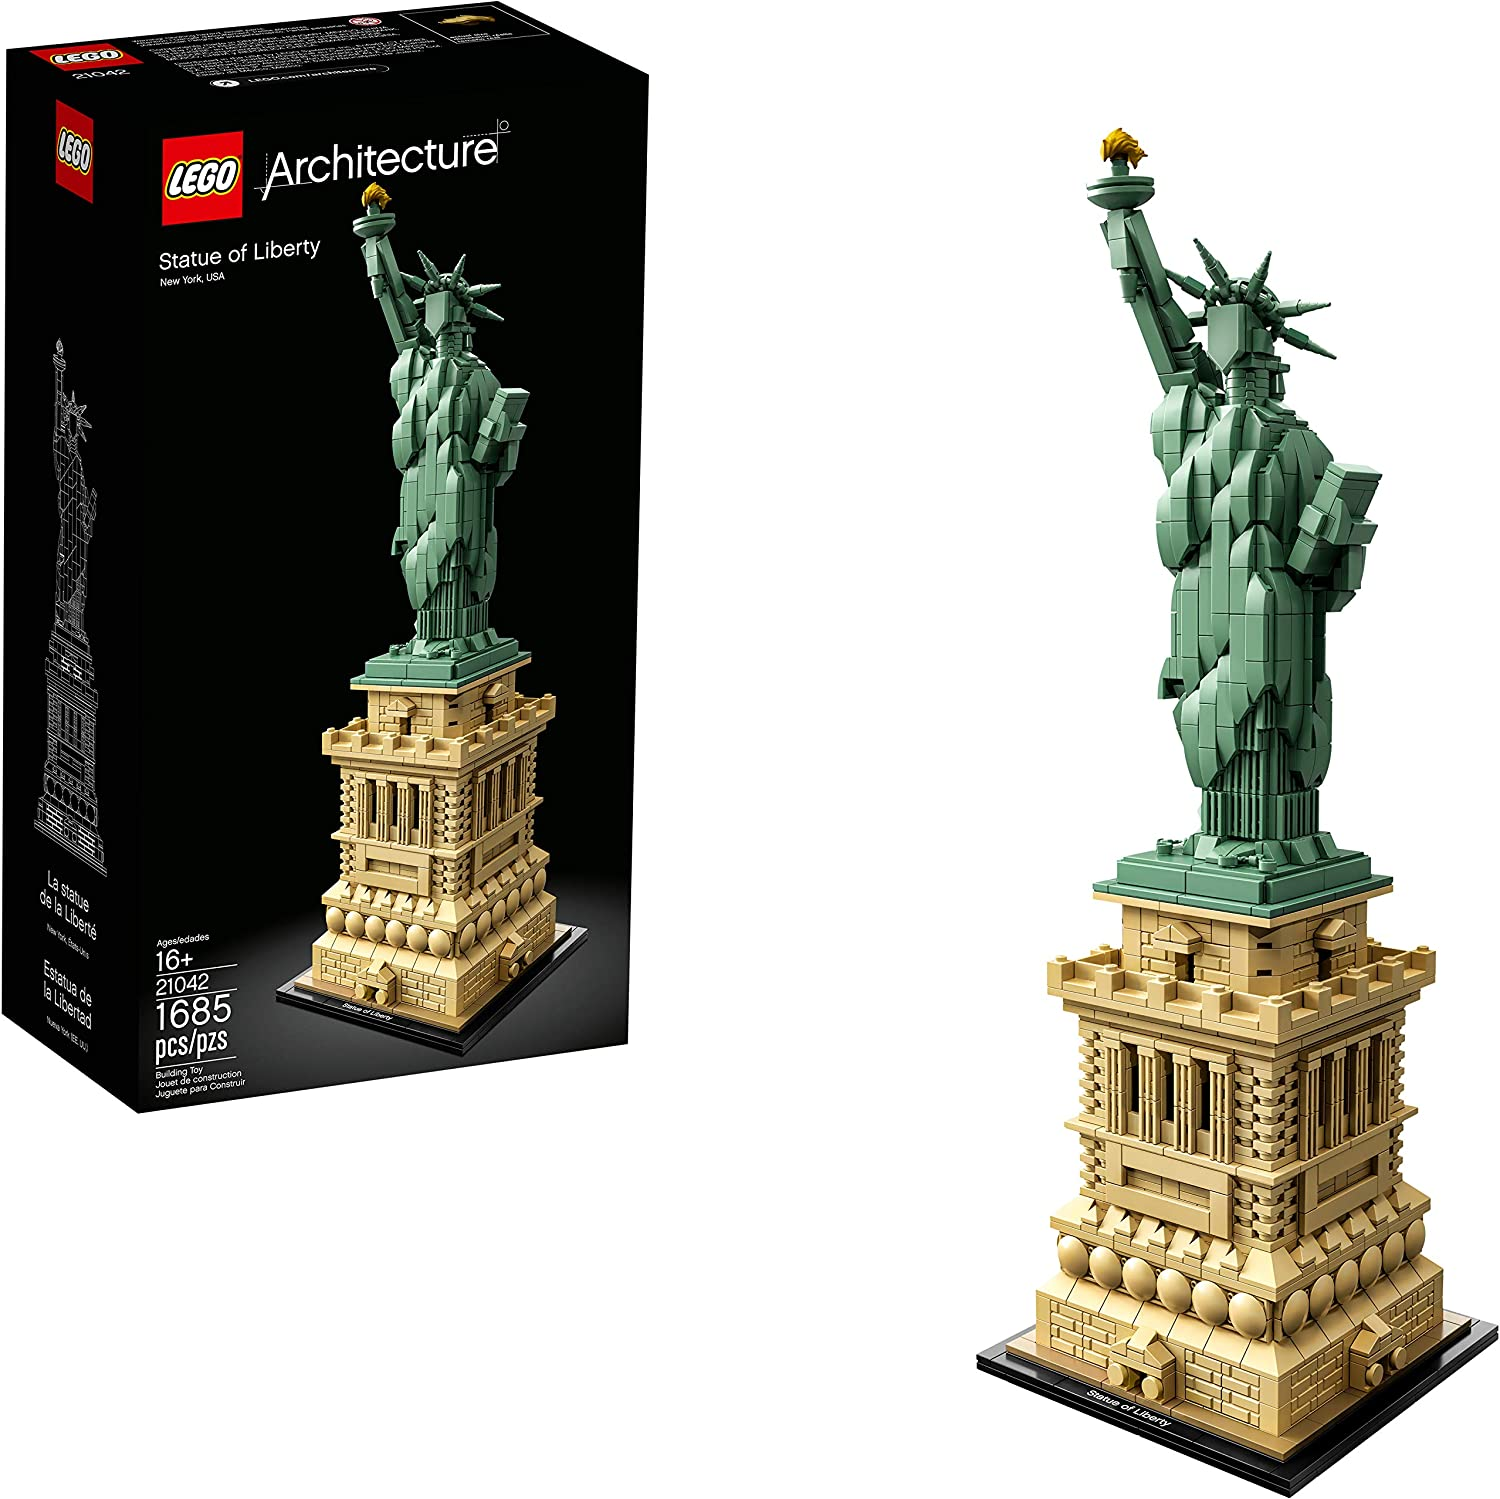 LEGO Architecture Statue of Liberty Kit Pie Deluxe Building 21042 1685 Ranking TOP20